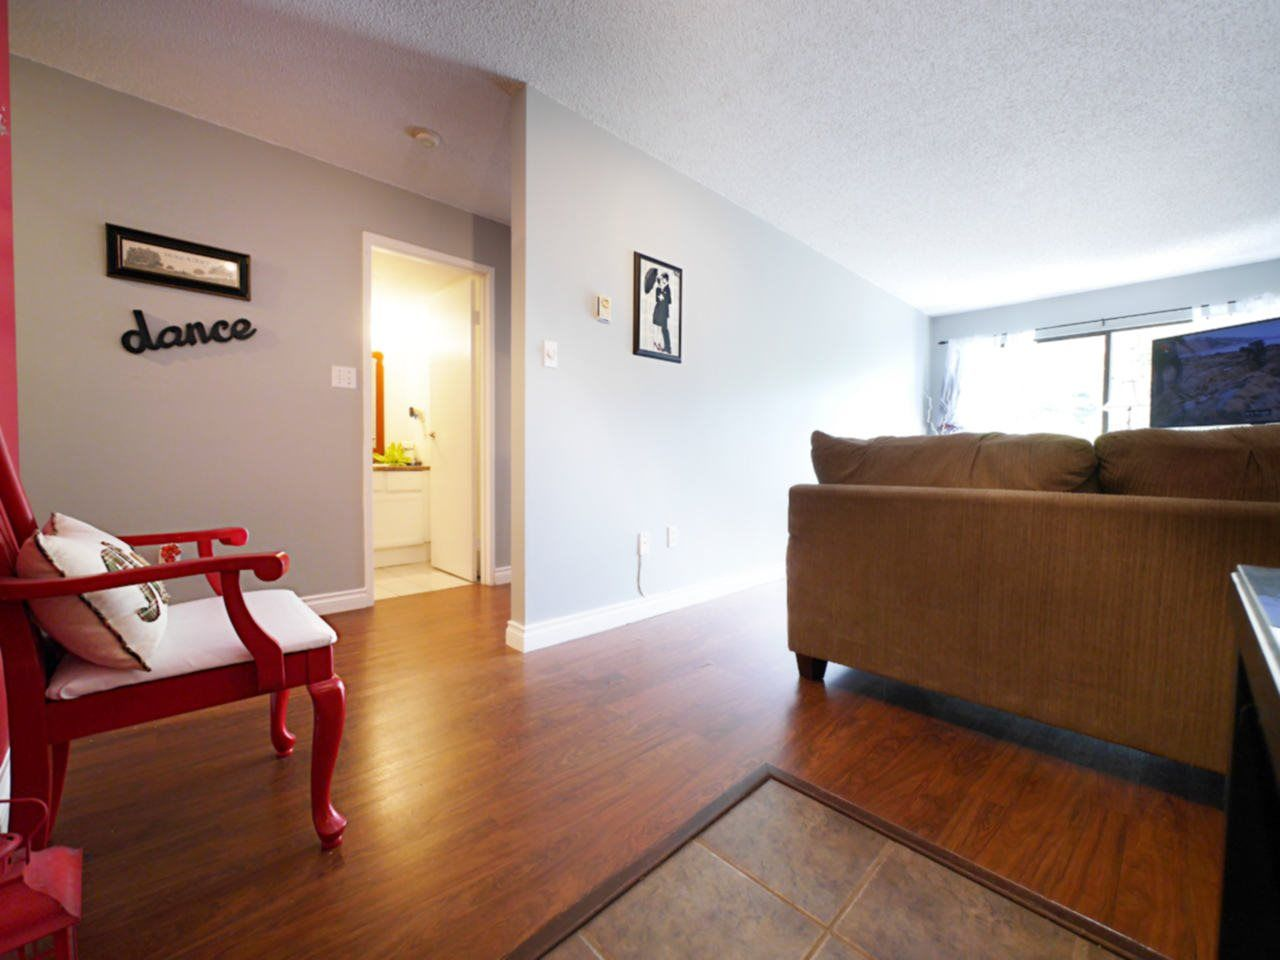 """Photo 9: Photos: 105 9952 149 Street in Surrey: Guildford Condo for sale in """"Tall Timbers"""" (North Surrey)  : MLS®# R2107429"""